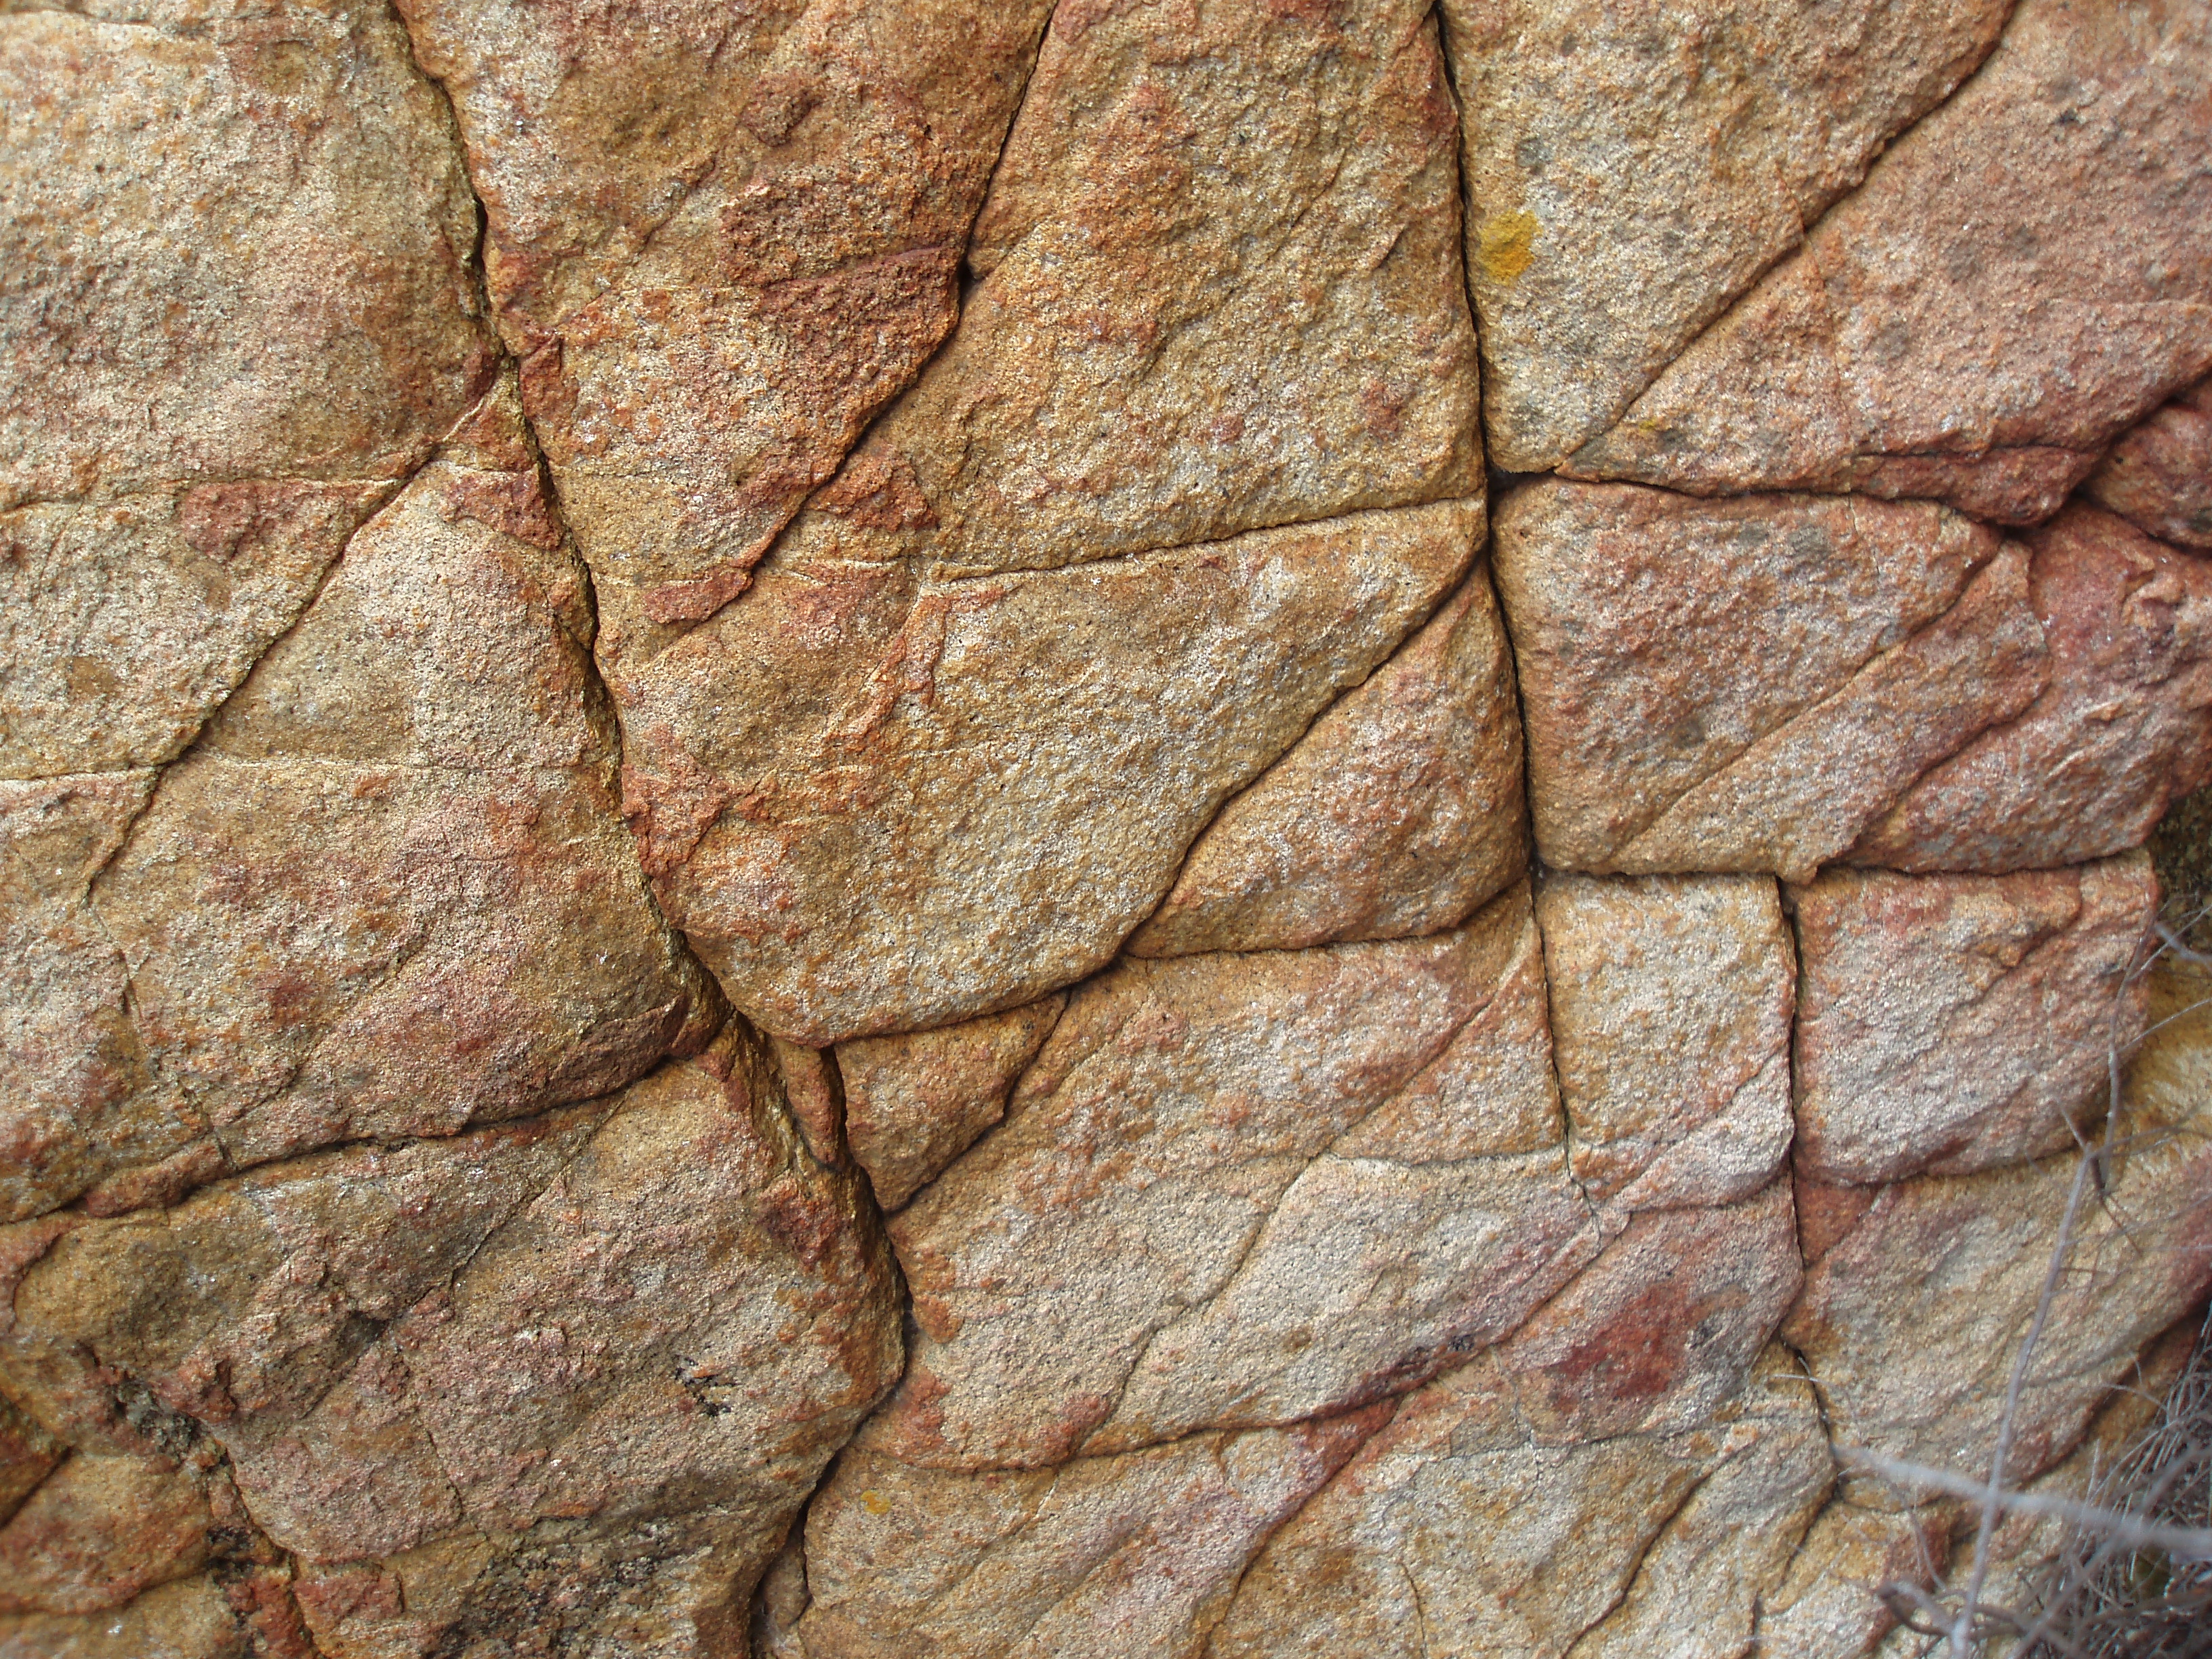 weather cracked sandstone rock pavement